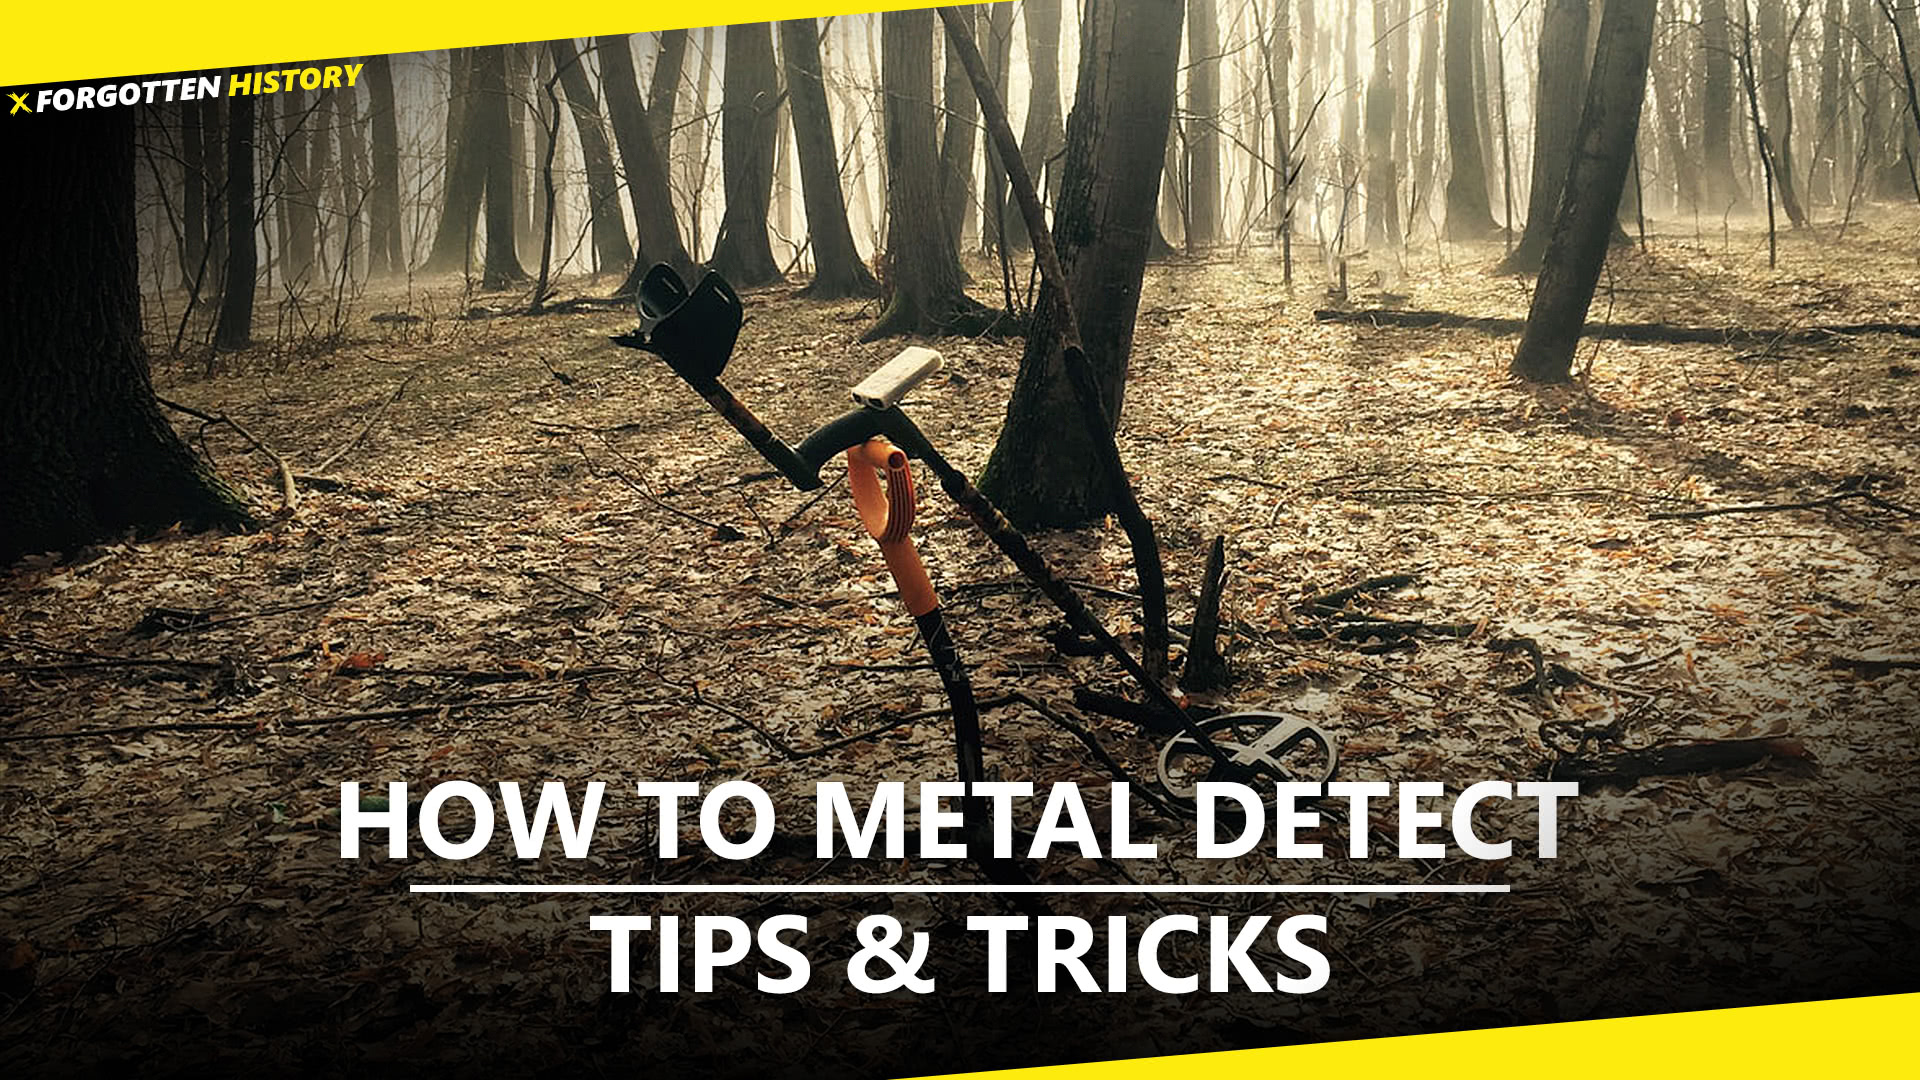 How to Metal Detect: Tips & Tricks